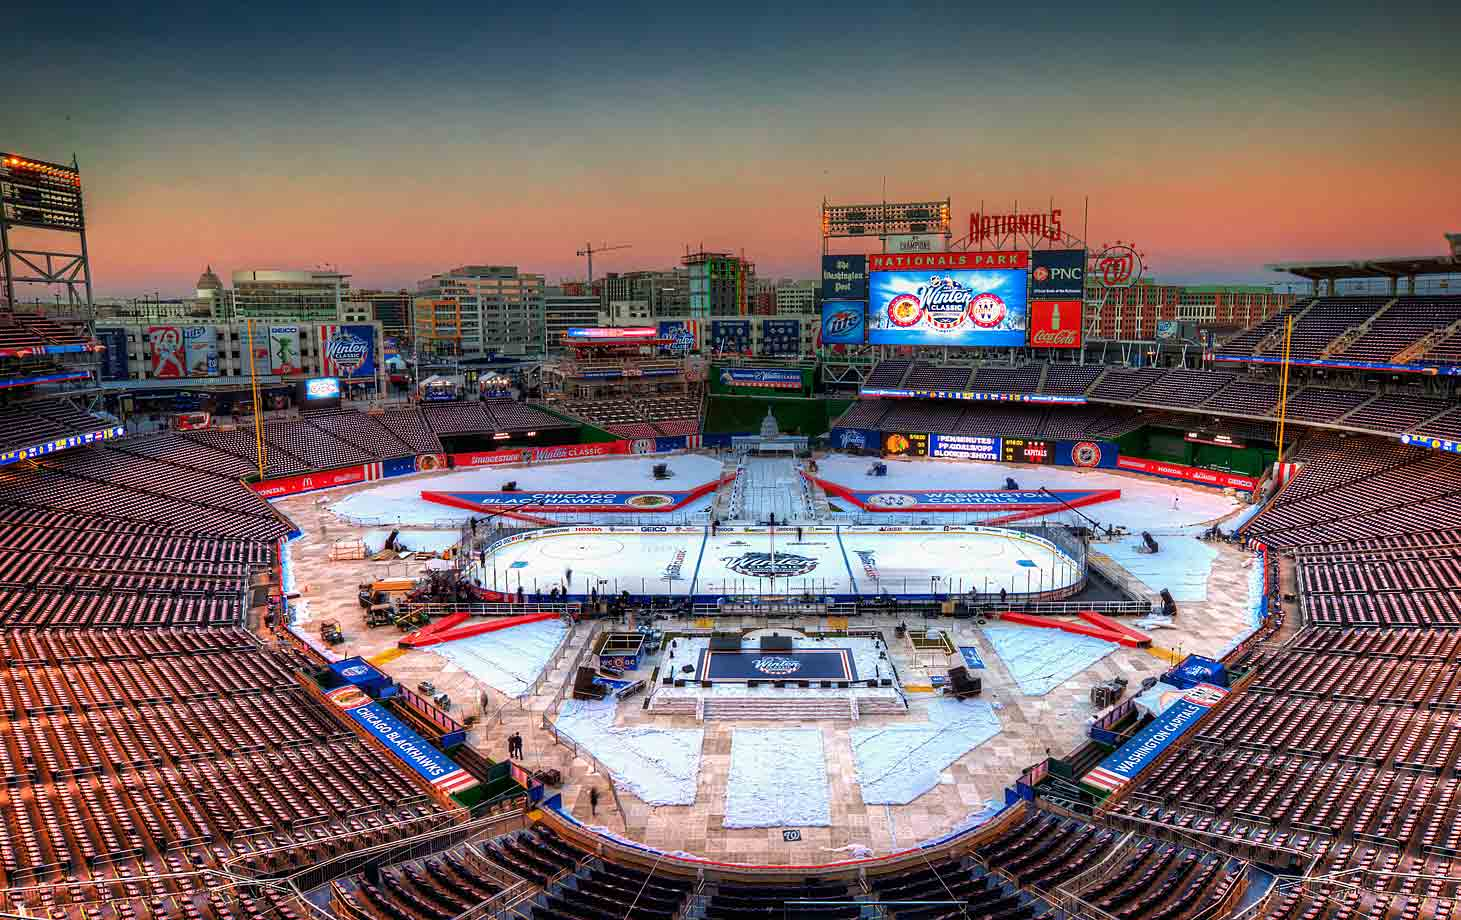 The 2015 edition was awarded to Nationals Park in Washington D.C. with the Capitals hosting the Chicago Blackhawks.